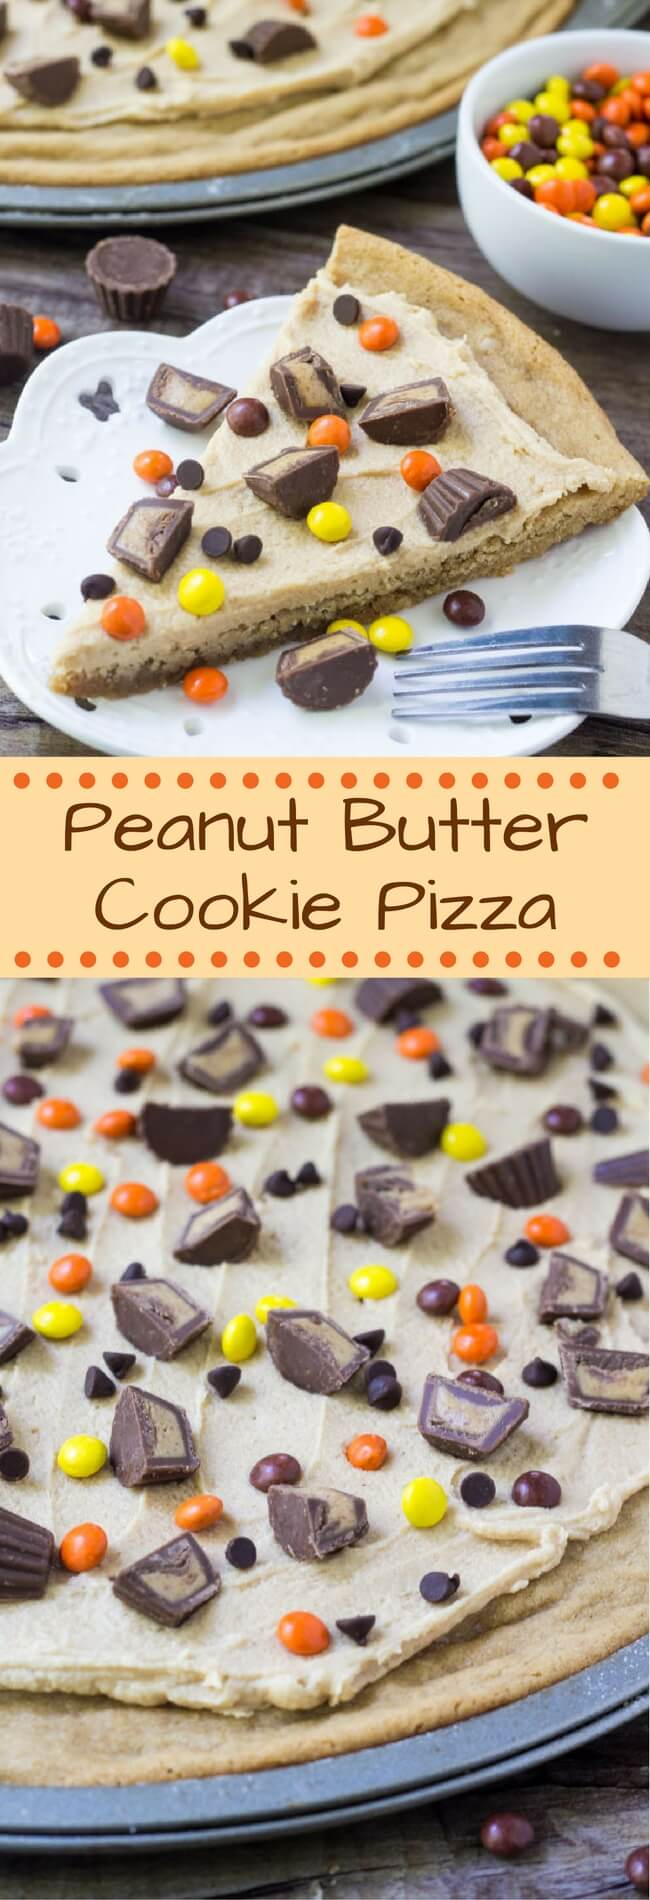 This Peanut Butter Cookie Pizza starts with one BIG peanut butter cookie. Then it's topped with creamy peanut butter frosting & all your favorite peanut butter candies. It's the perfect dessert for true peanut butter lovers!